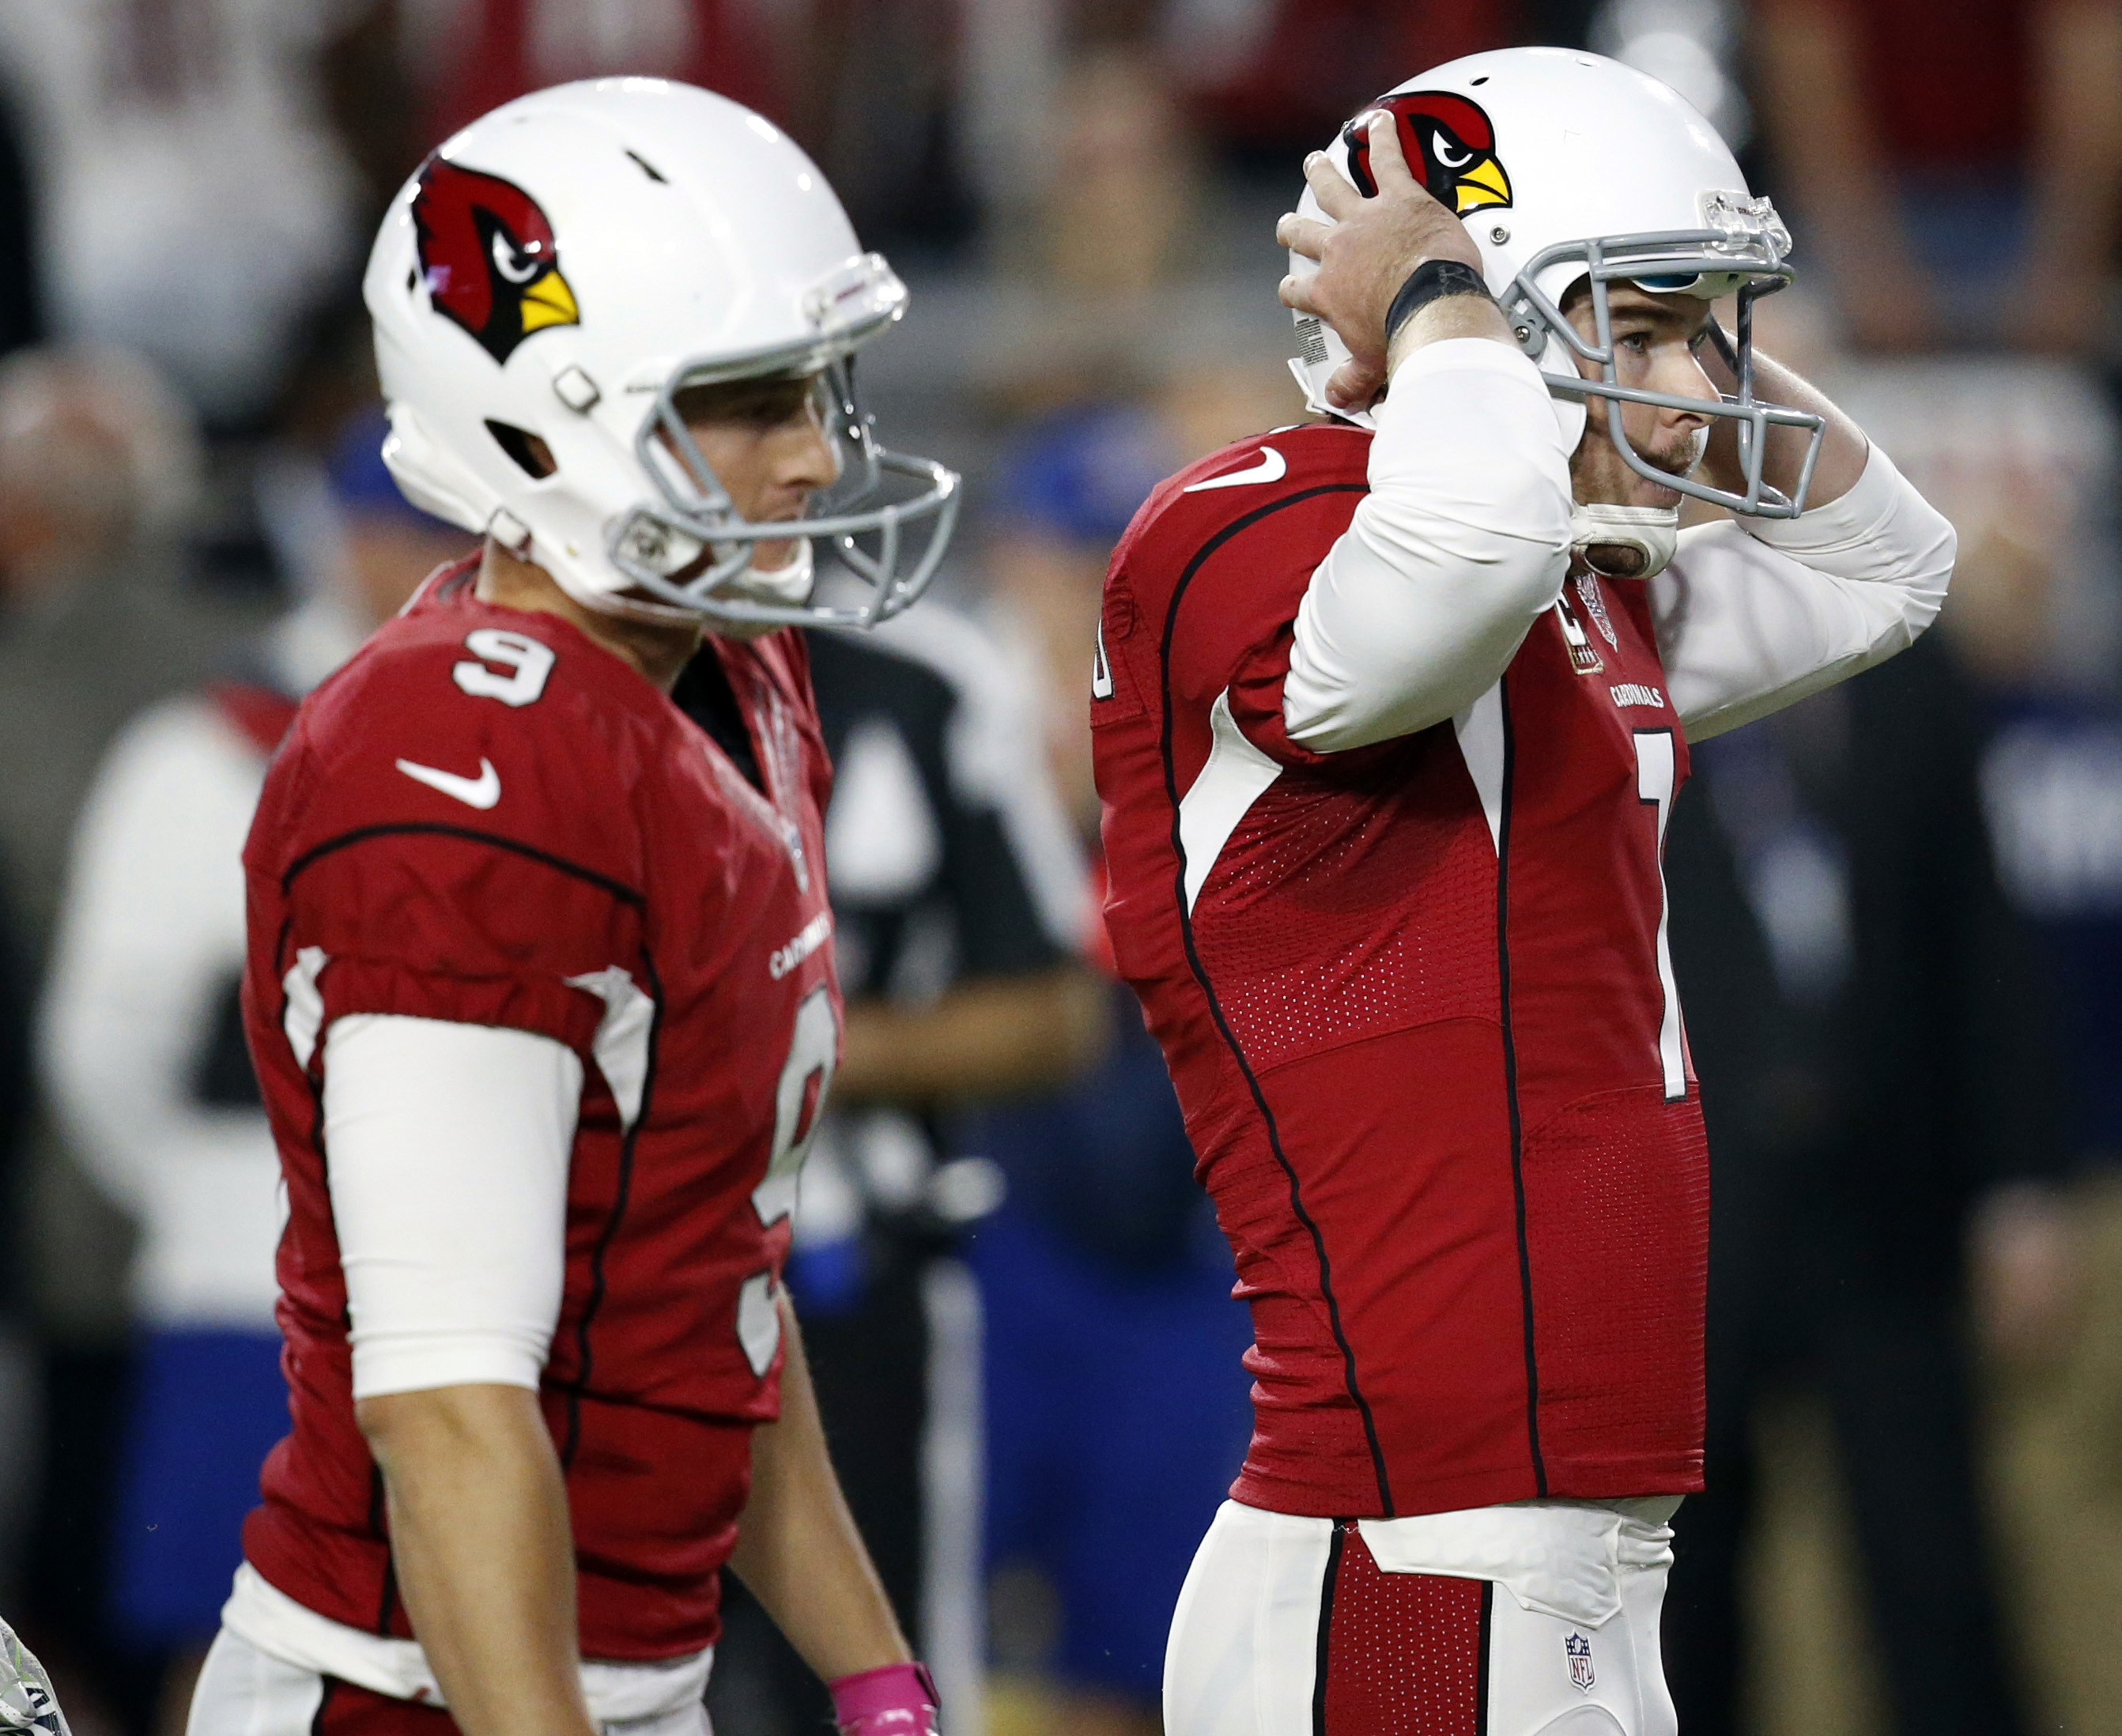 FILE - In this Oct. 23, 2016, file photo, Arizona Cardinals kicker Chandler Catanzaro (7) reacts after missing a field goal as punter Ryan Quigley (9) looks on during overtime of an NFL football game against the Seattle Seahawks in Glendale, Ariz. The gam